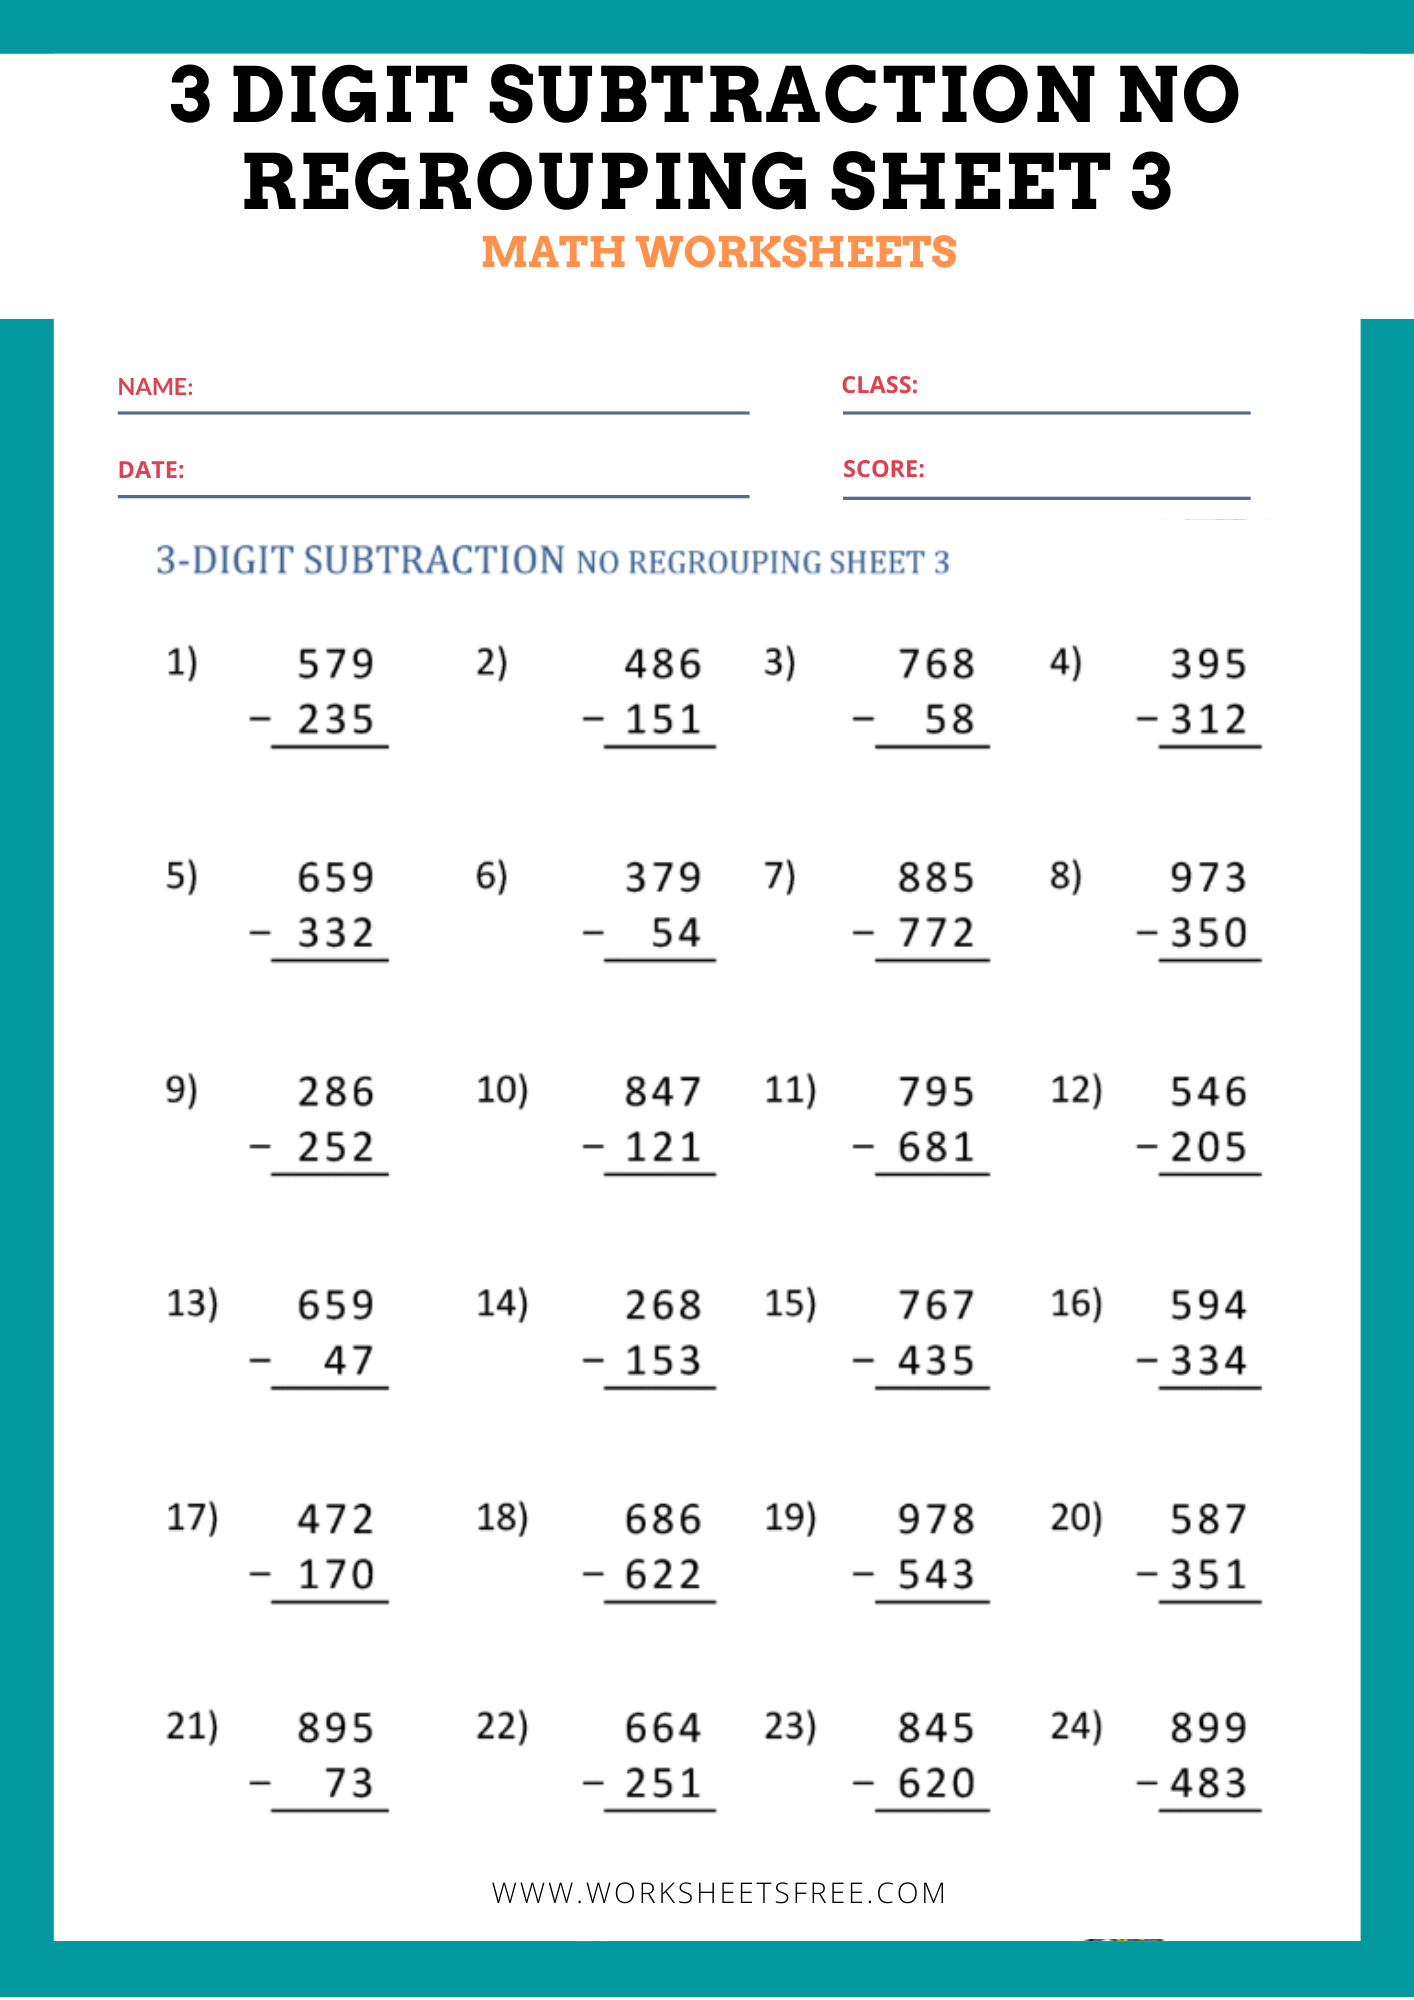 3 Digit Subtraction No Regrouping Sheet 3